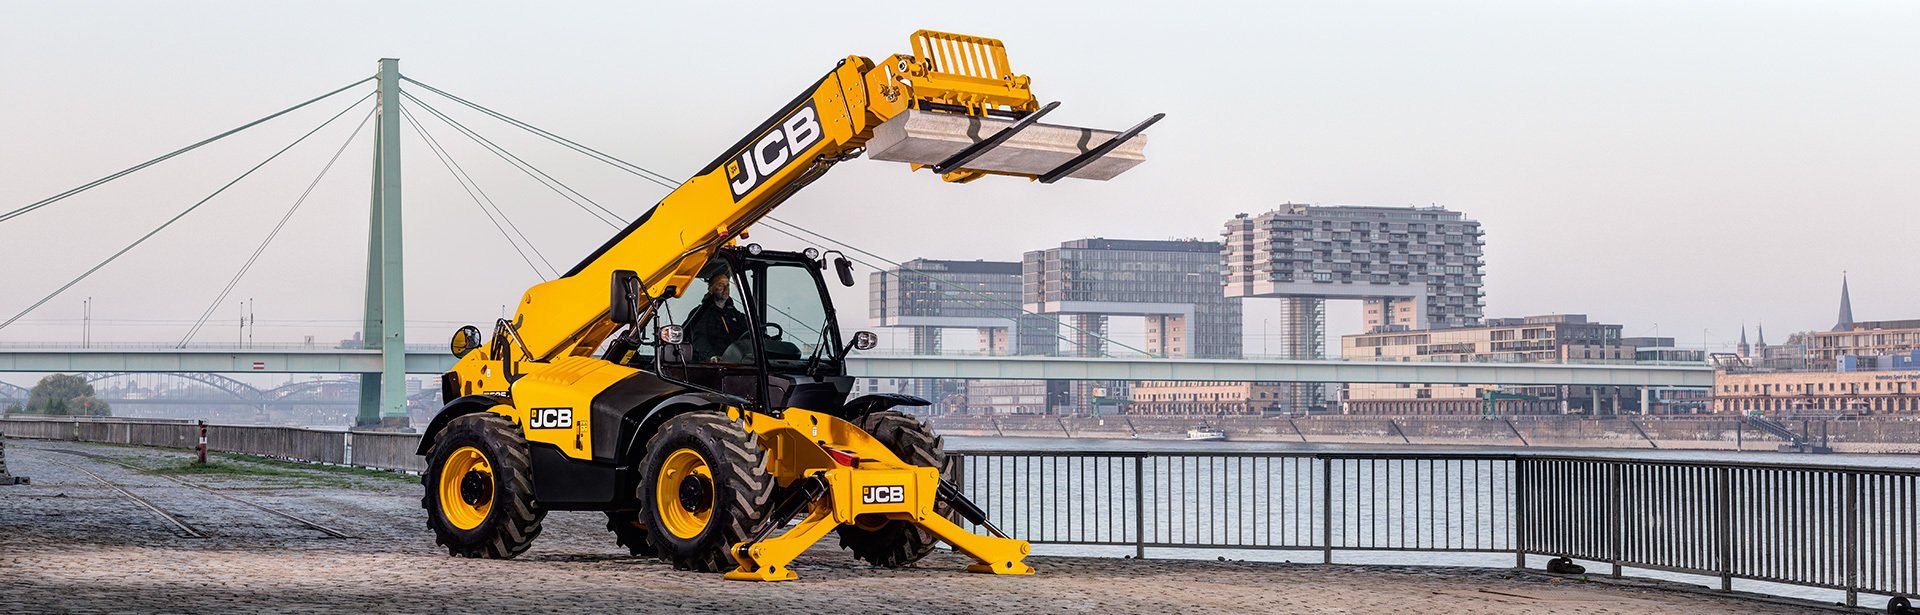 Image result for jcb 540-170 brochure